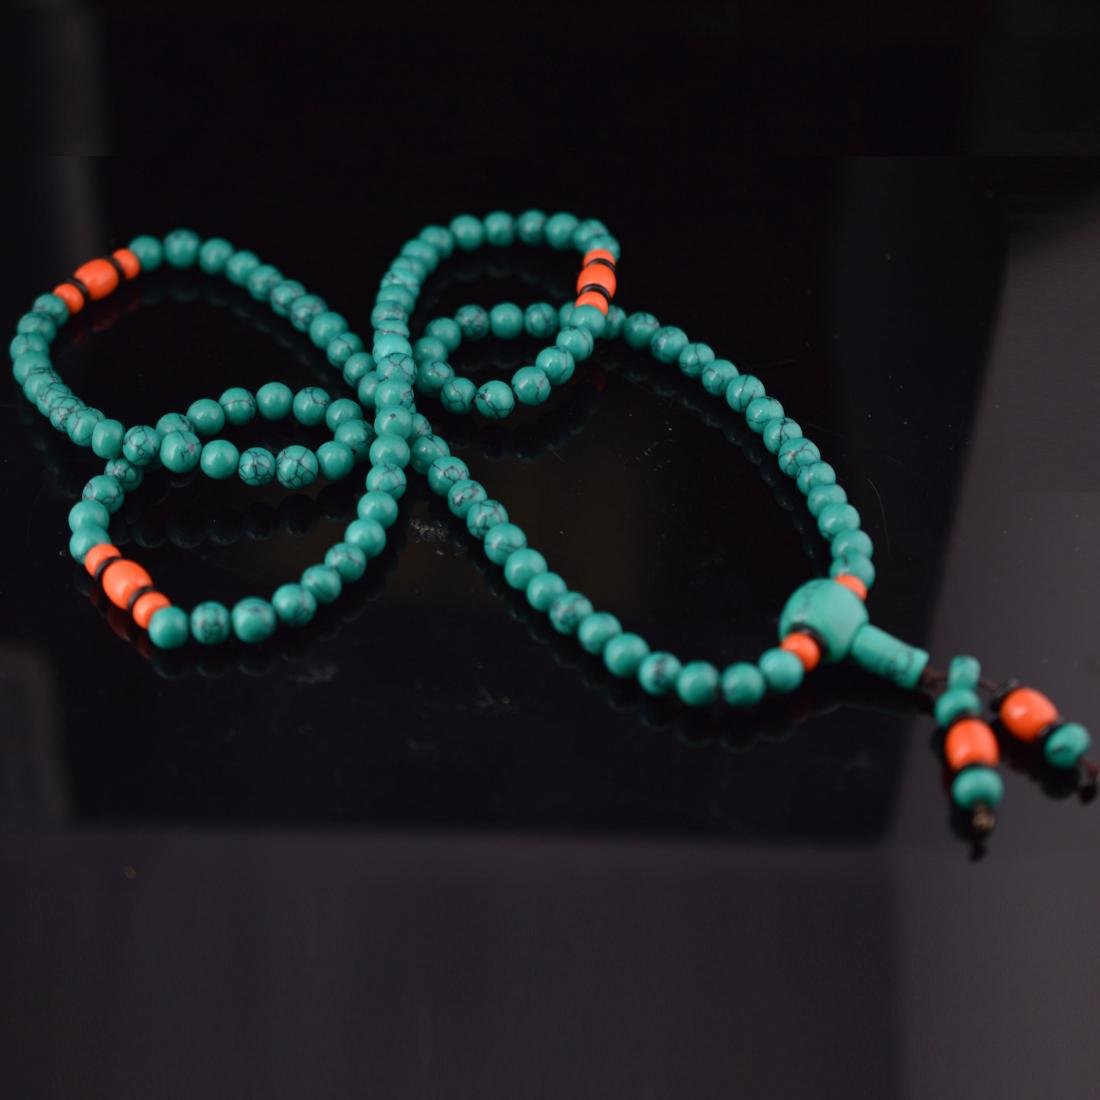 Turquoise Bead Necklace - 4